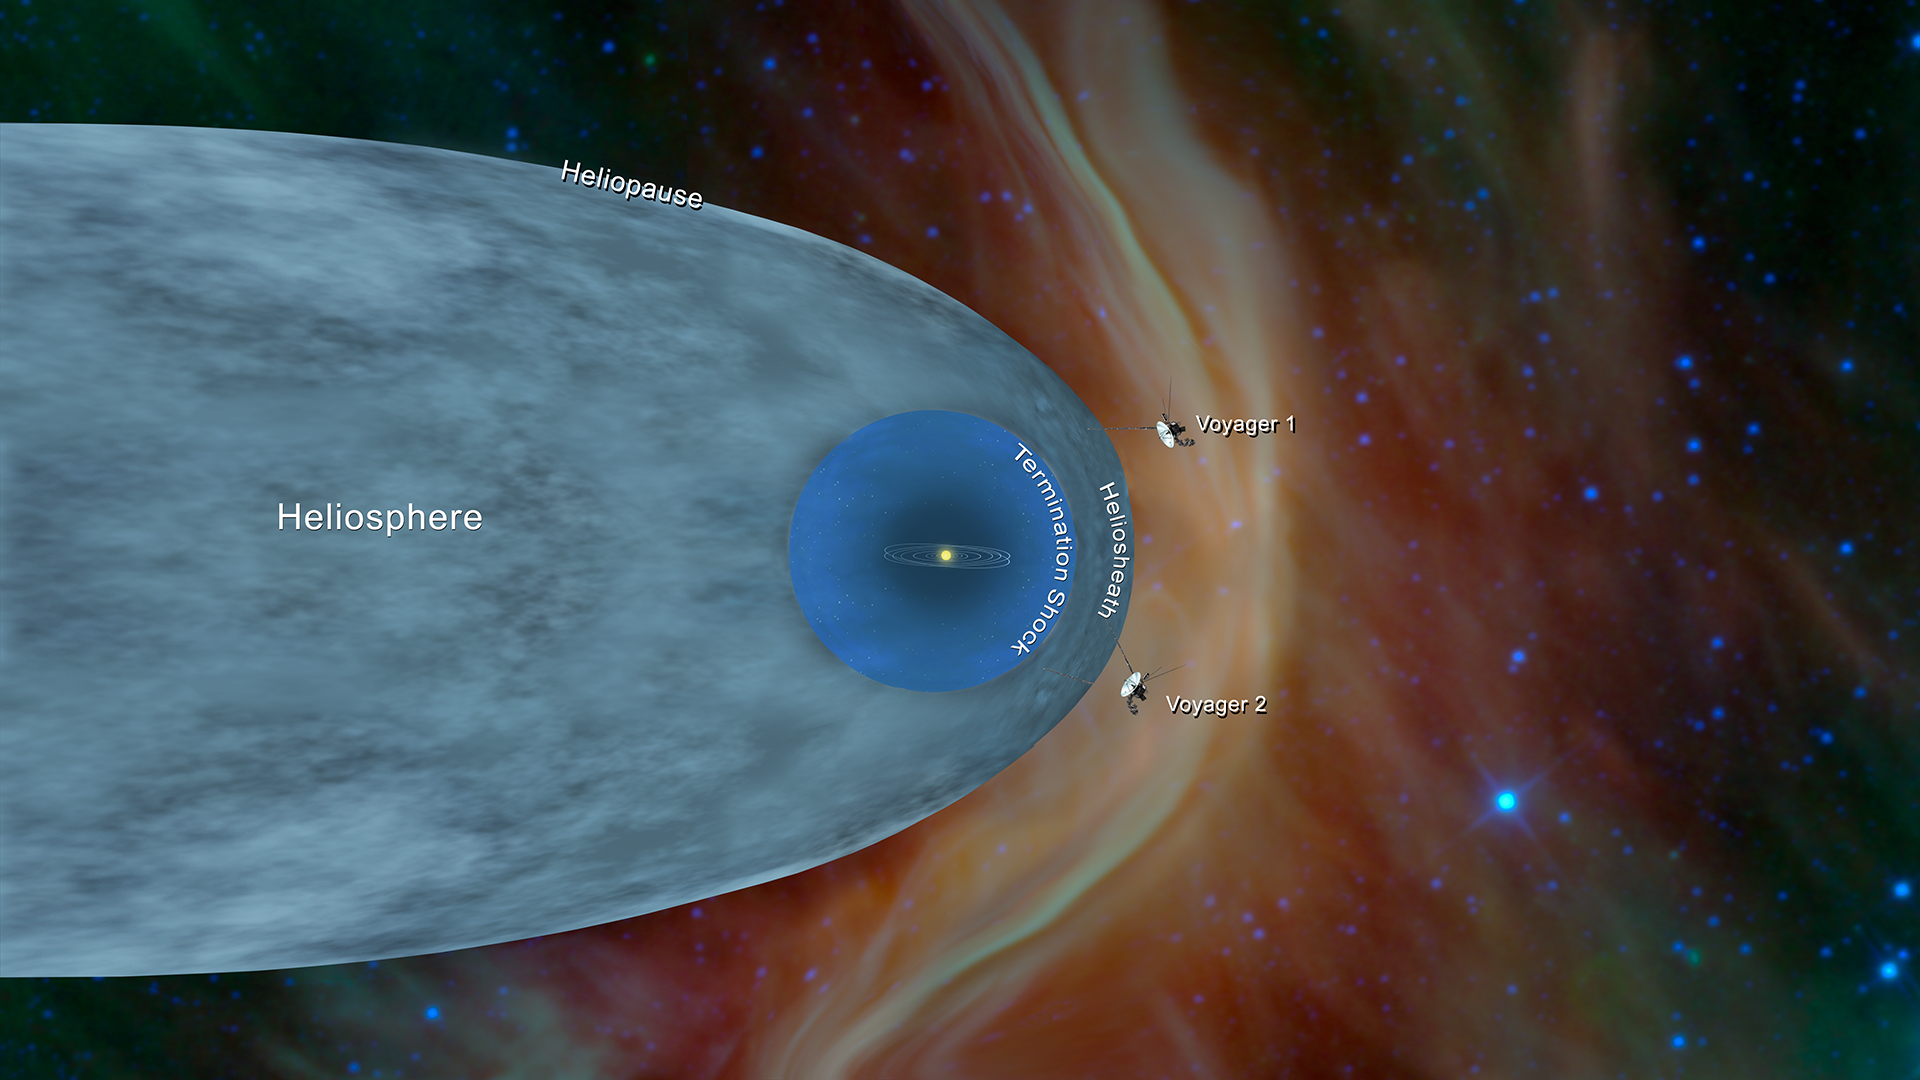 https://www.nasa.gov/press-release/nasa-s-voyager-2-probe-enters-interstellar-space